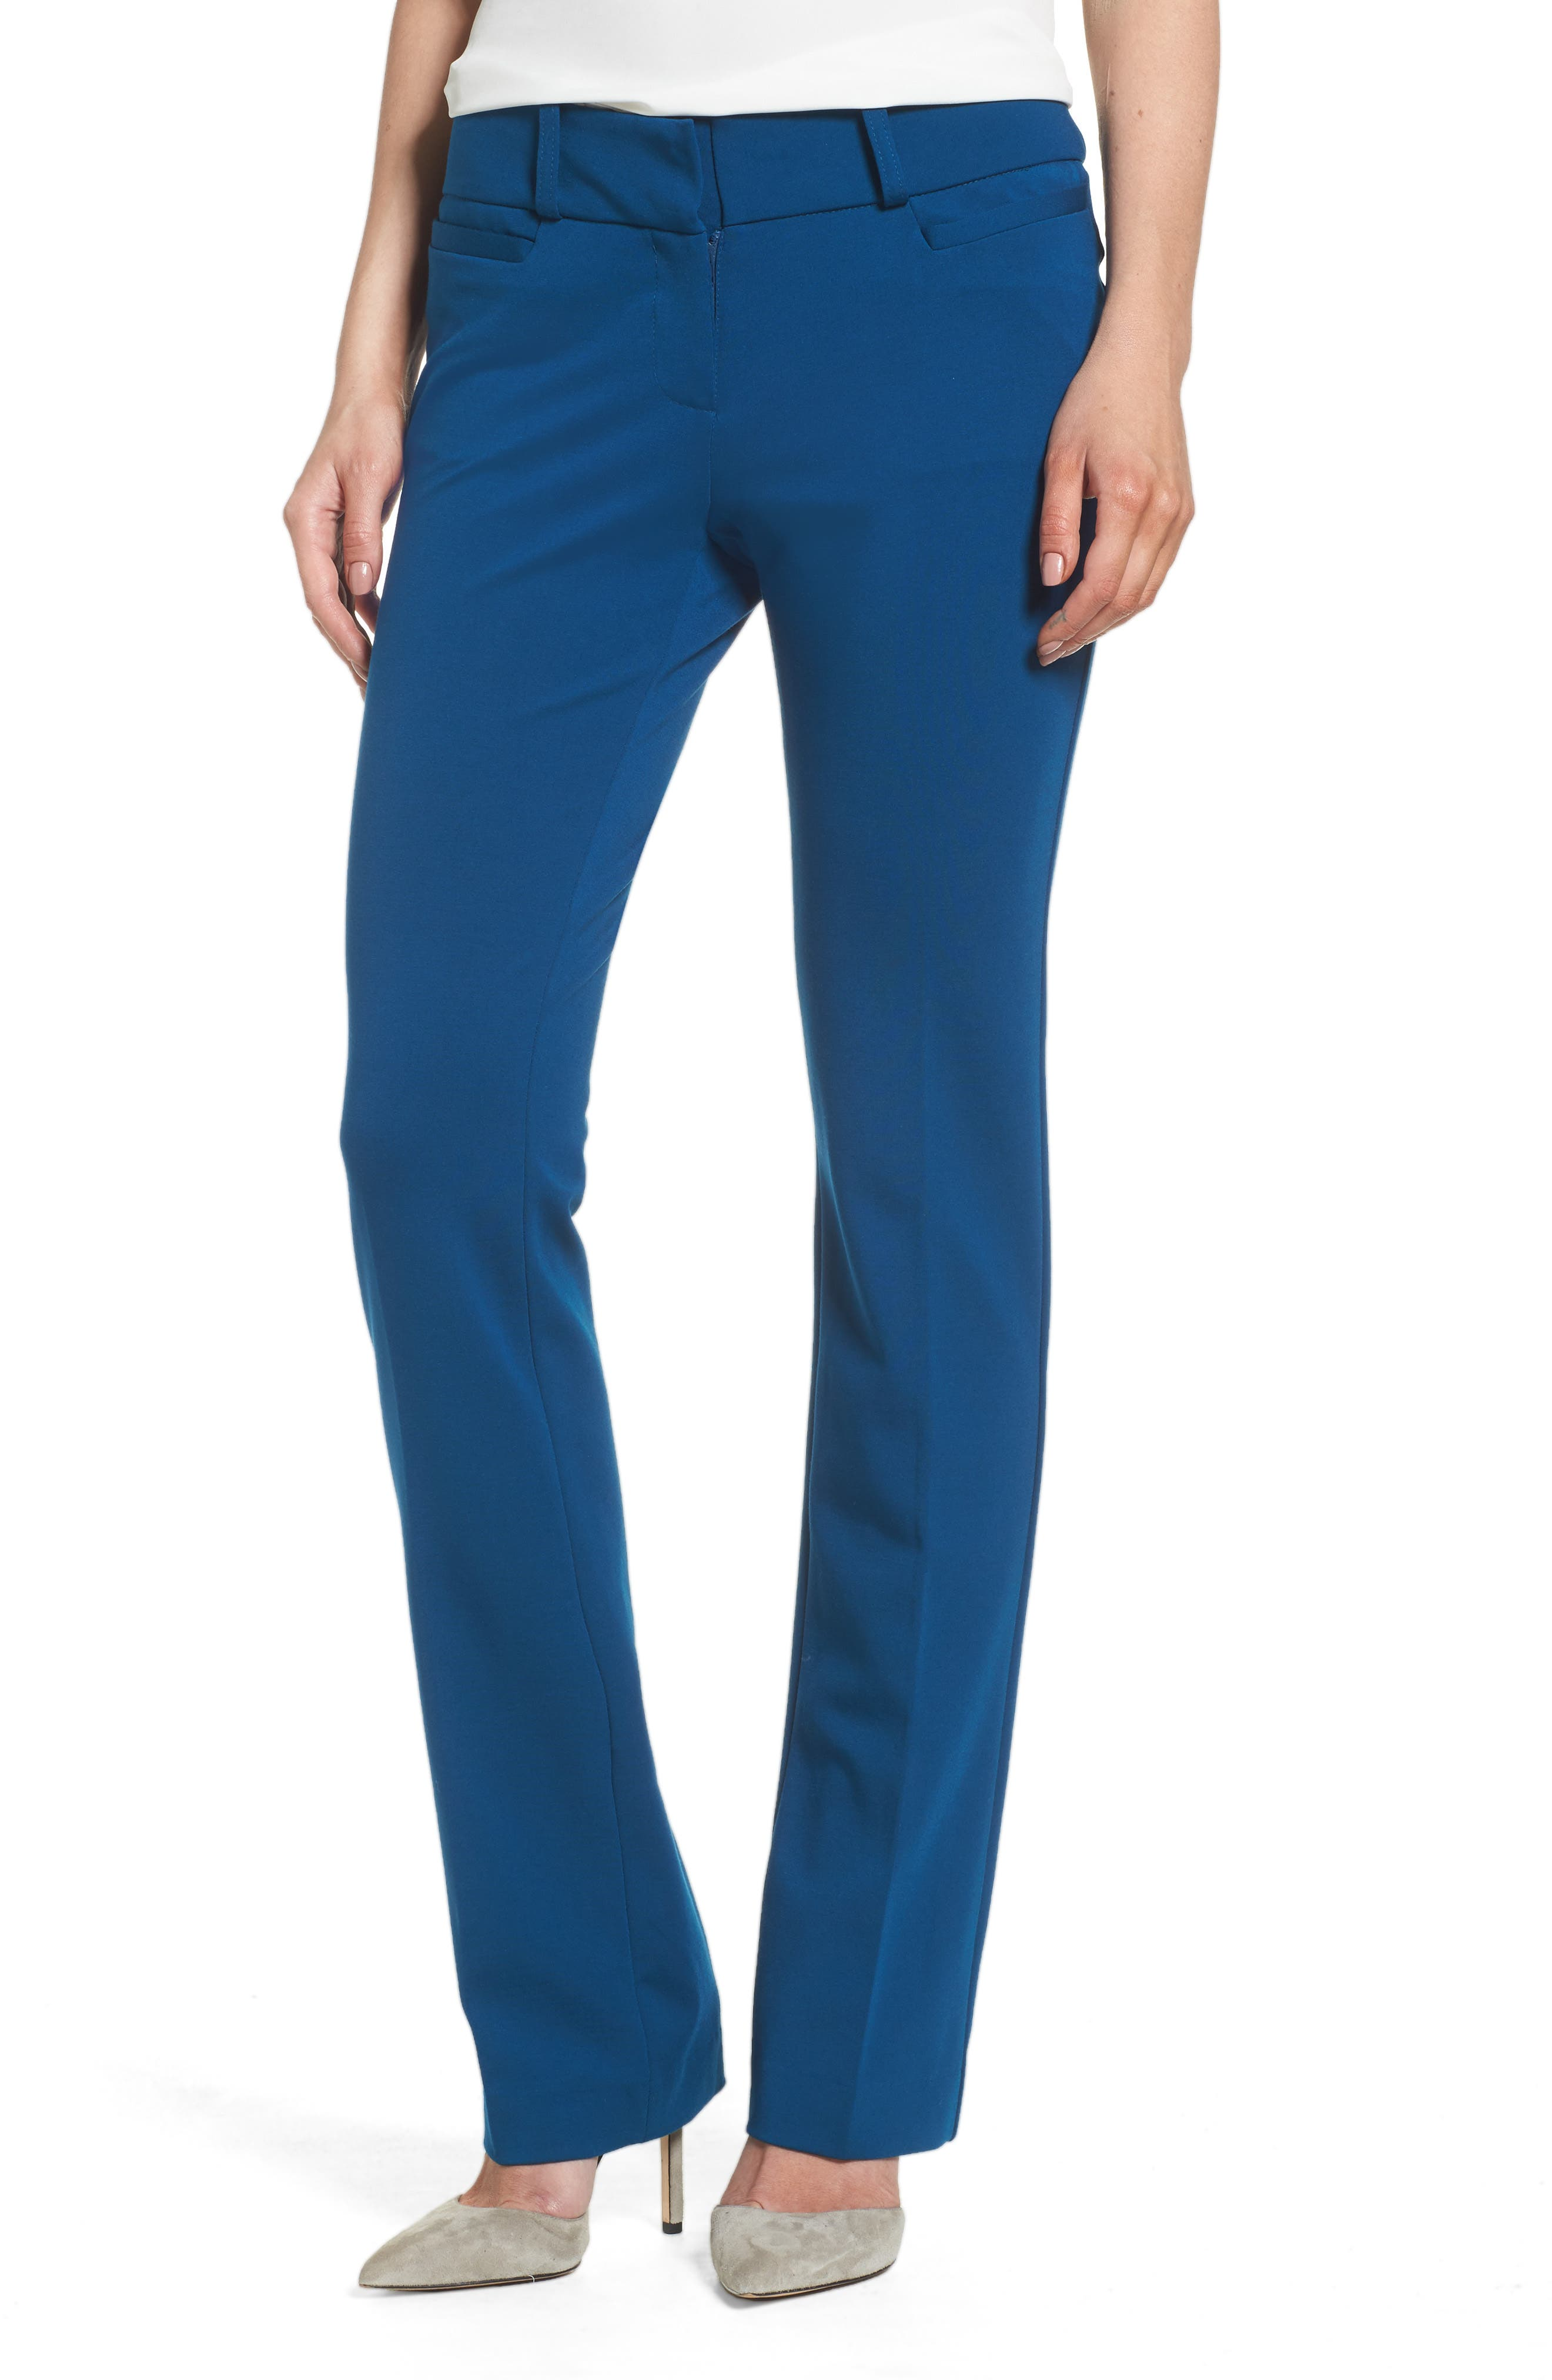 Jane Brown Trousers,                         Main,                         color, NEW NAVY